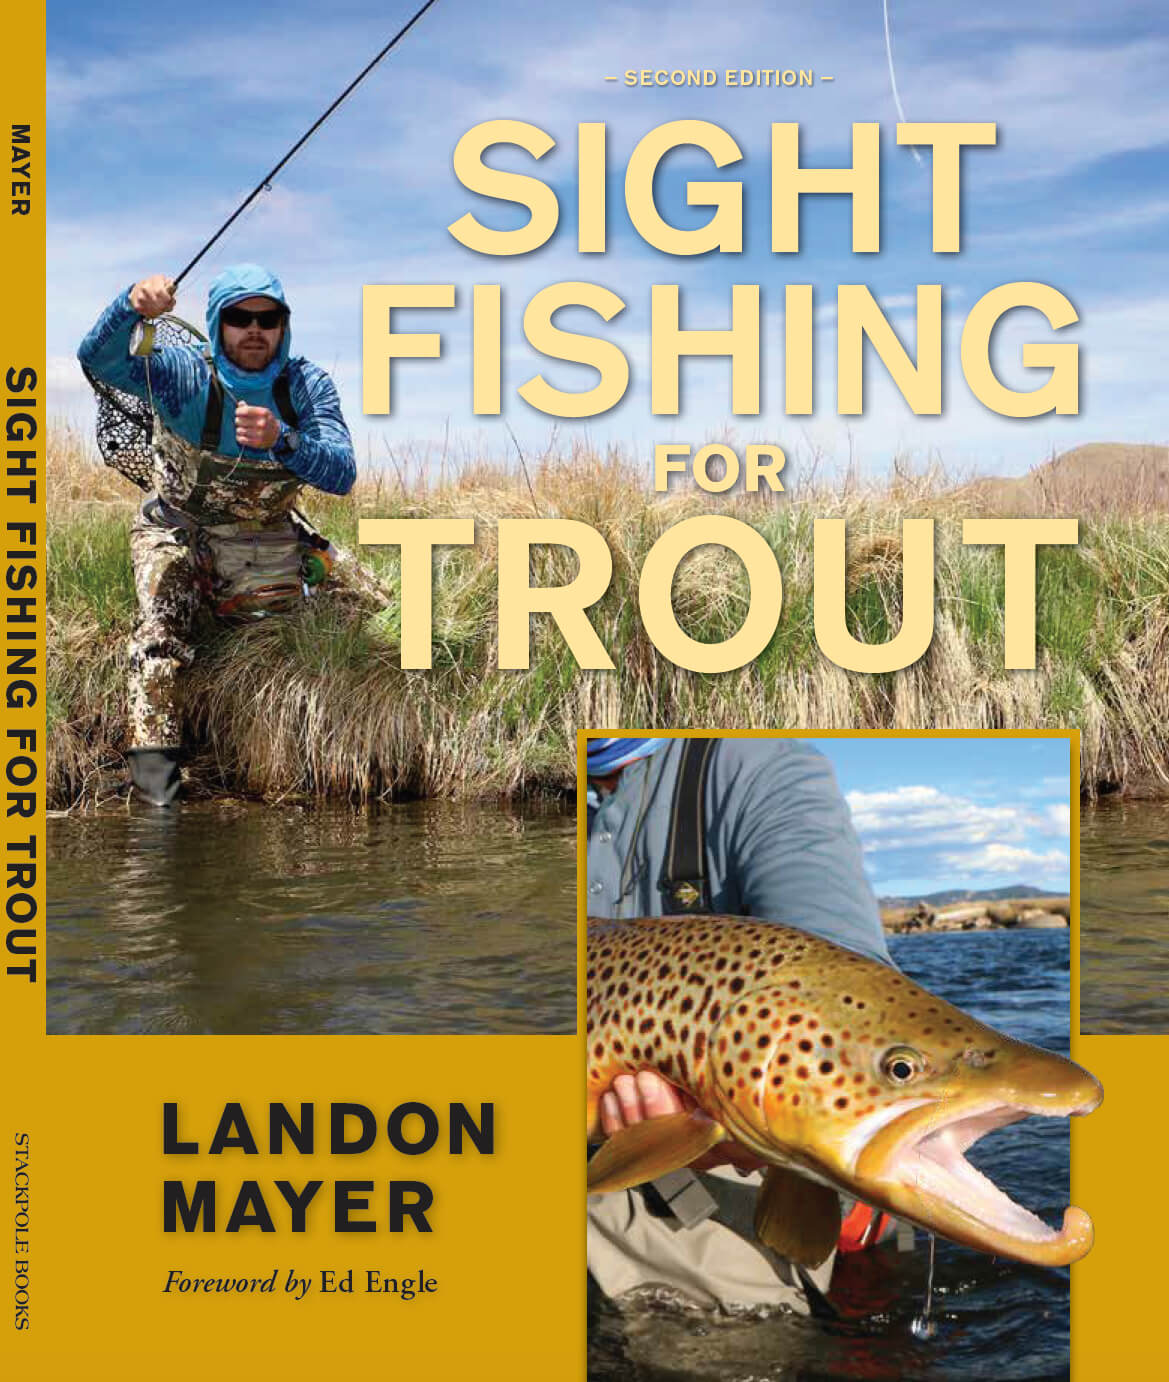 The cover of Landon Mayer's book Sight Fishing for Trout